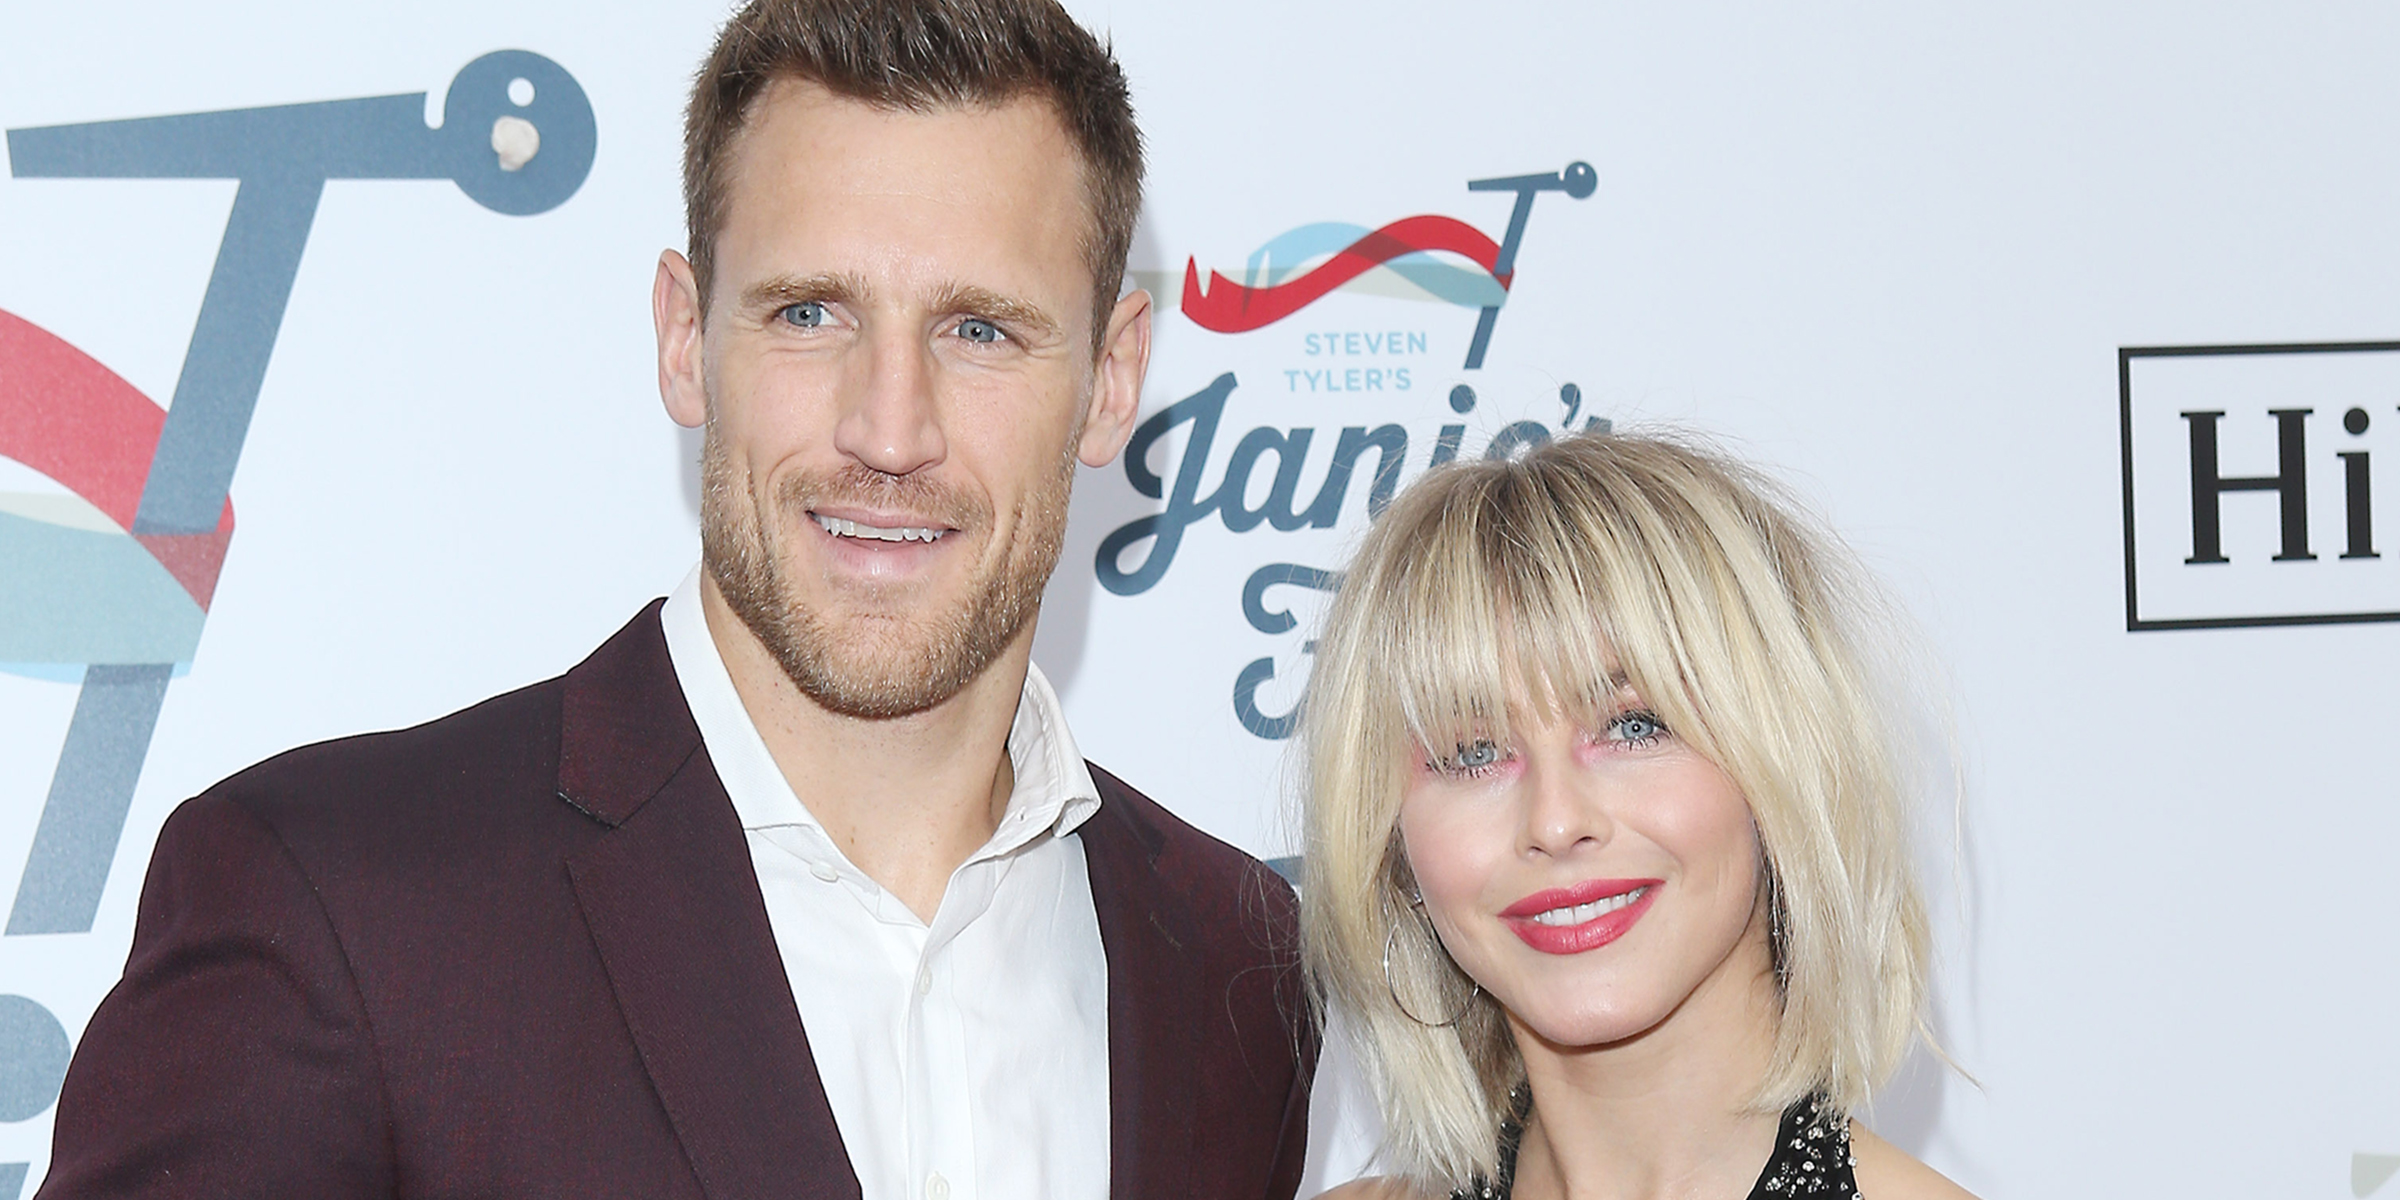 Julianne Hough and husband Brooks Laich undergoing IVF treatments